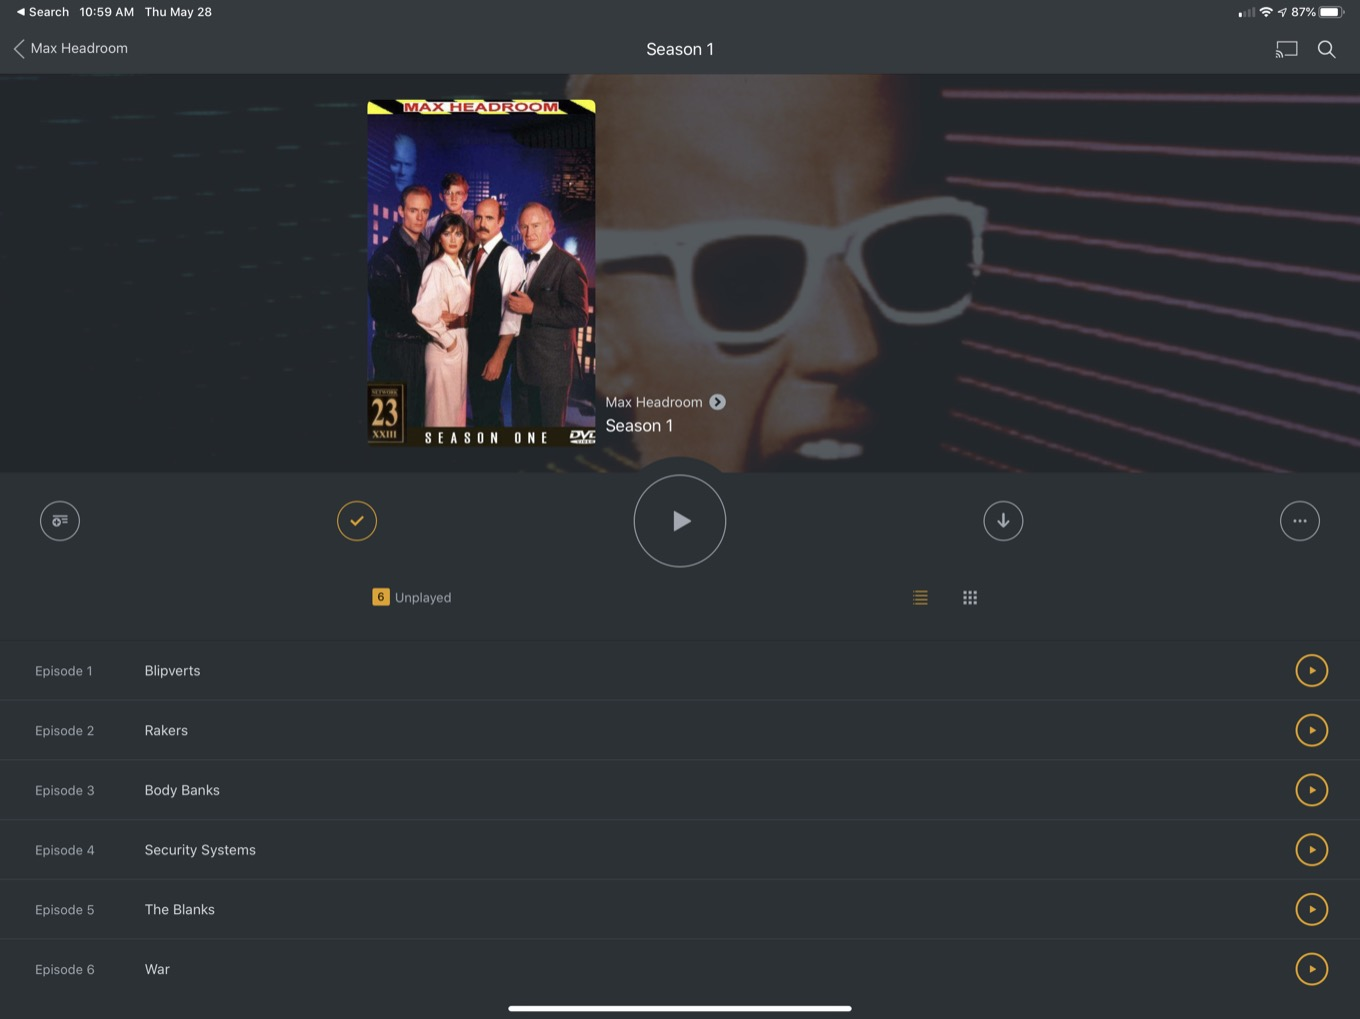 Max Headroom on Plex